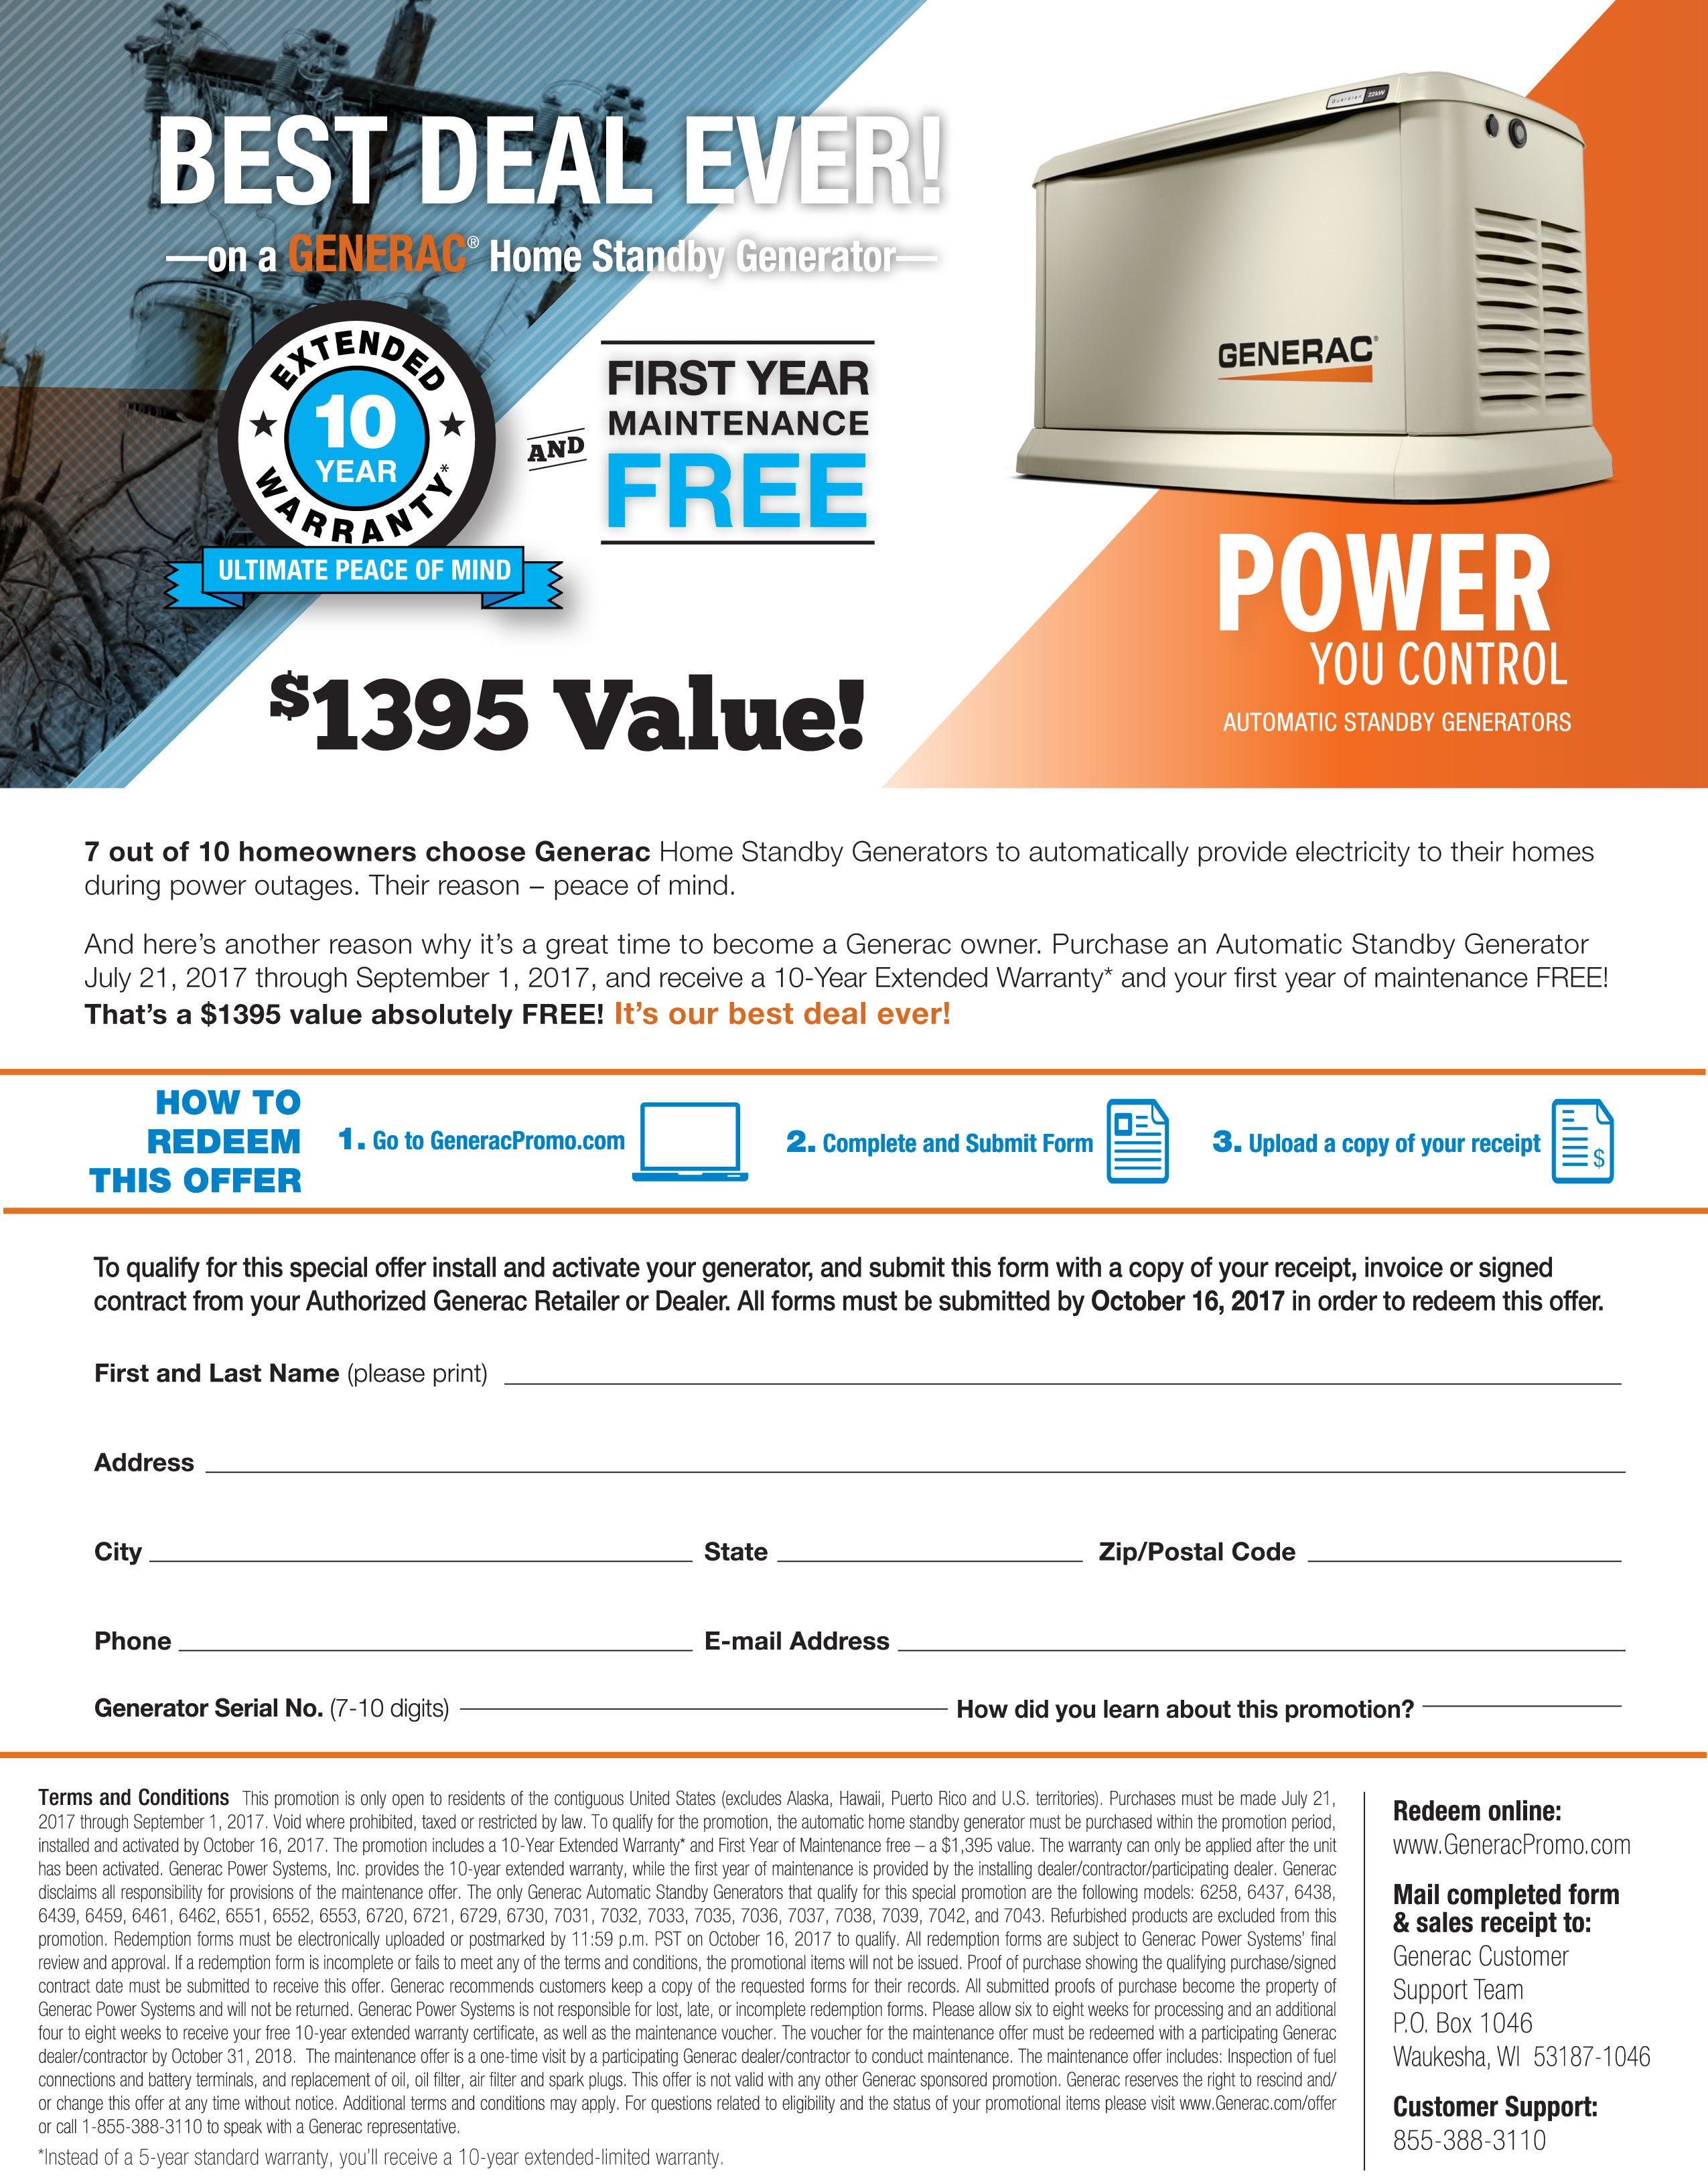 Generac Free 10 Year Extended Warranty & First Maintenance Free